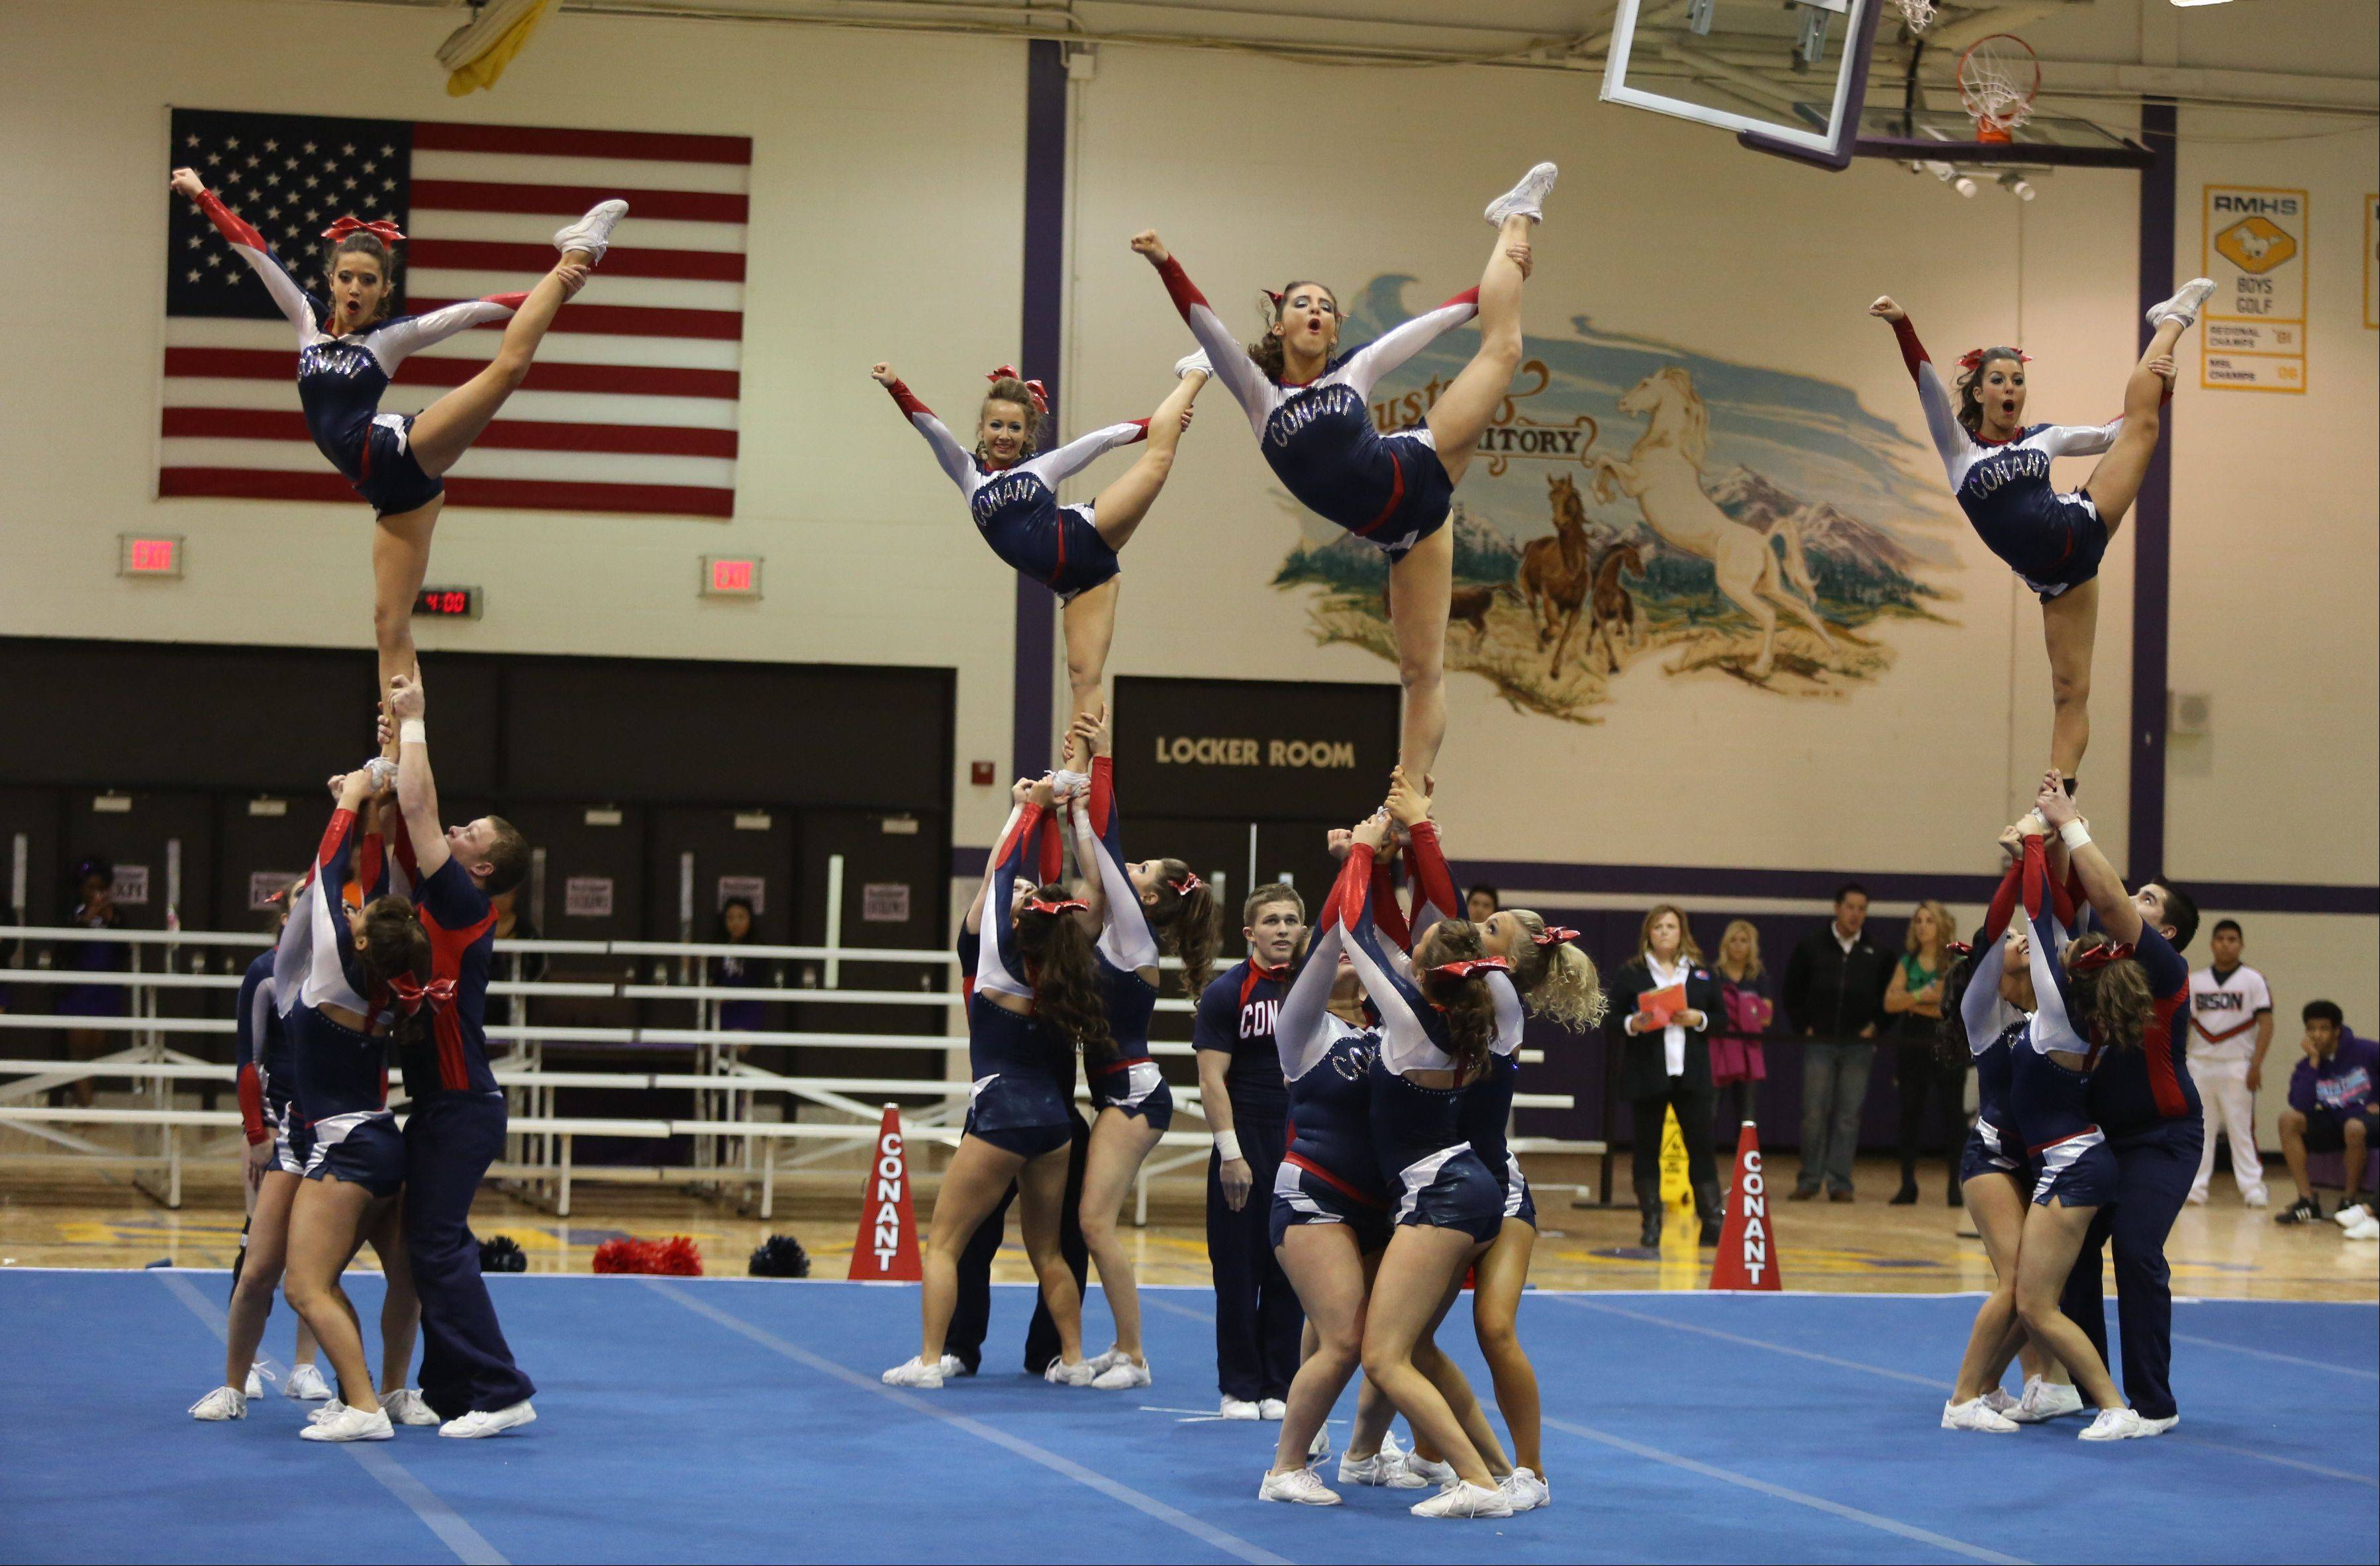 Conant High School competes in the Coed Team category during the IHSA Cheerleading Sectional Sunday hosted by Rolling Meadows High School.